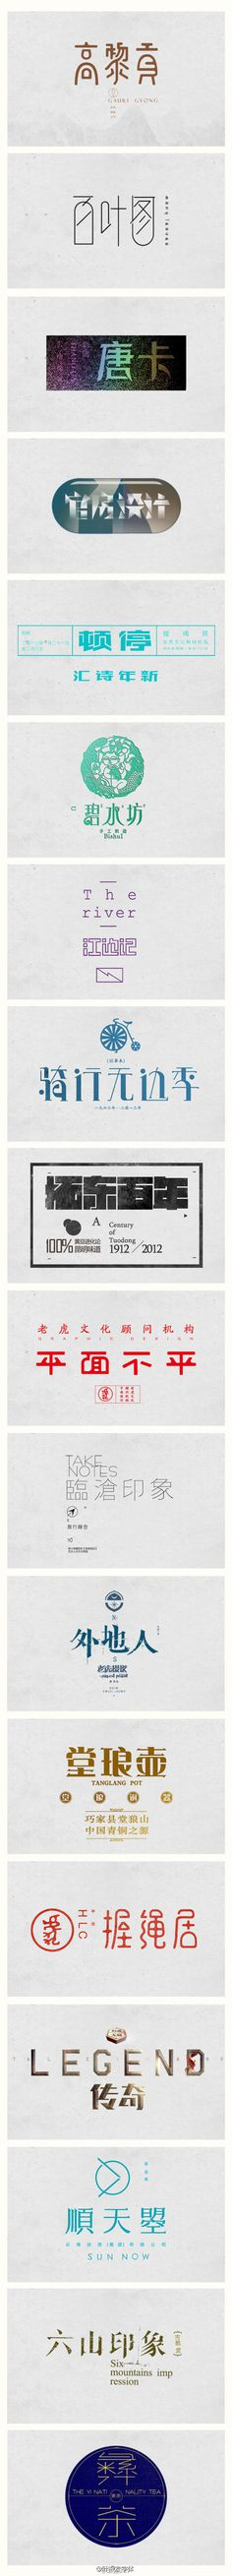 WOAH Chinese characters in awesome layouts